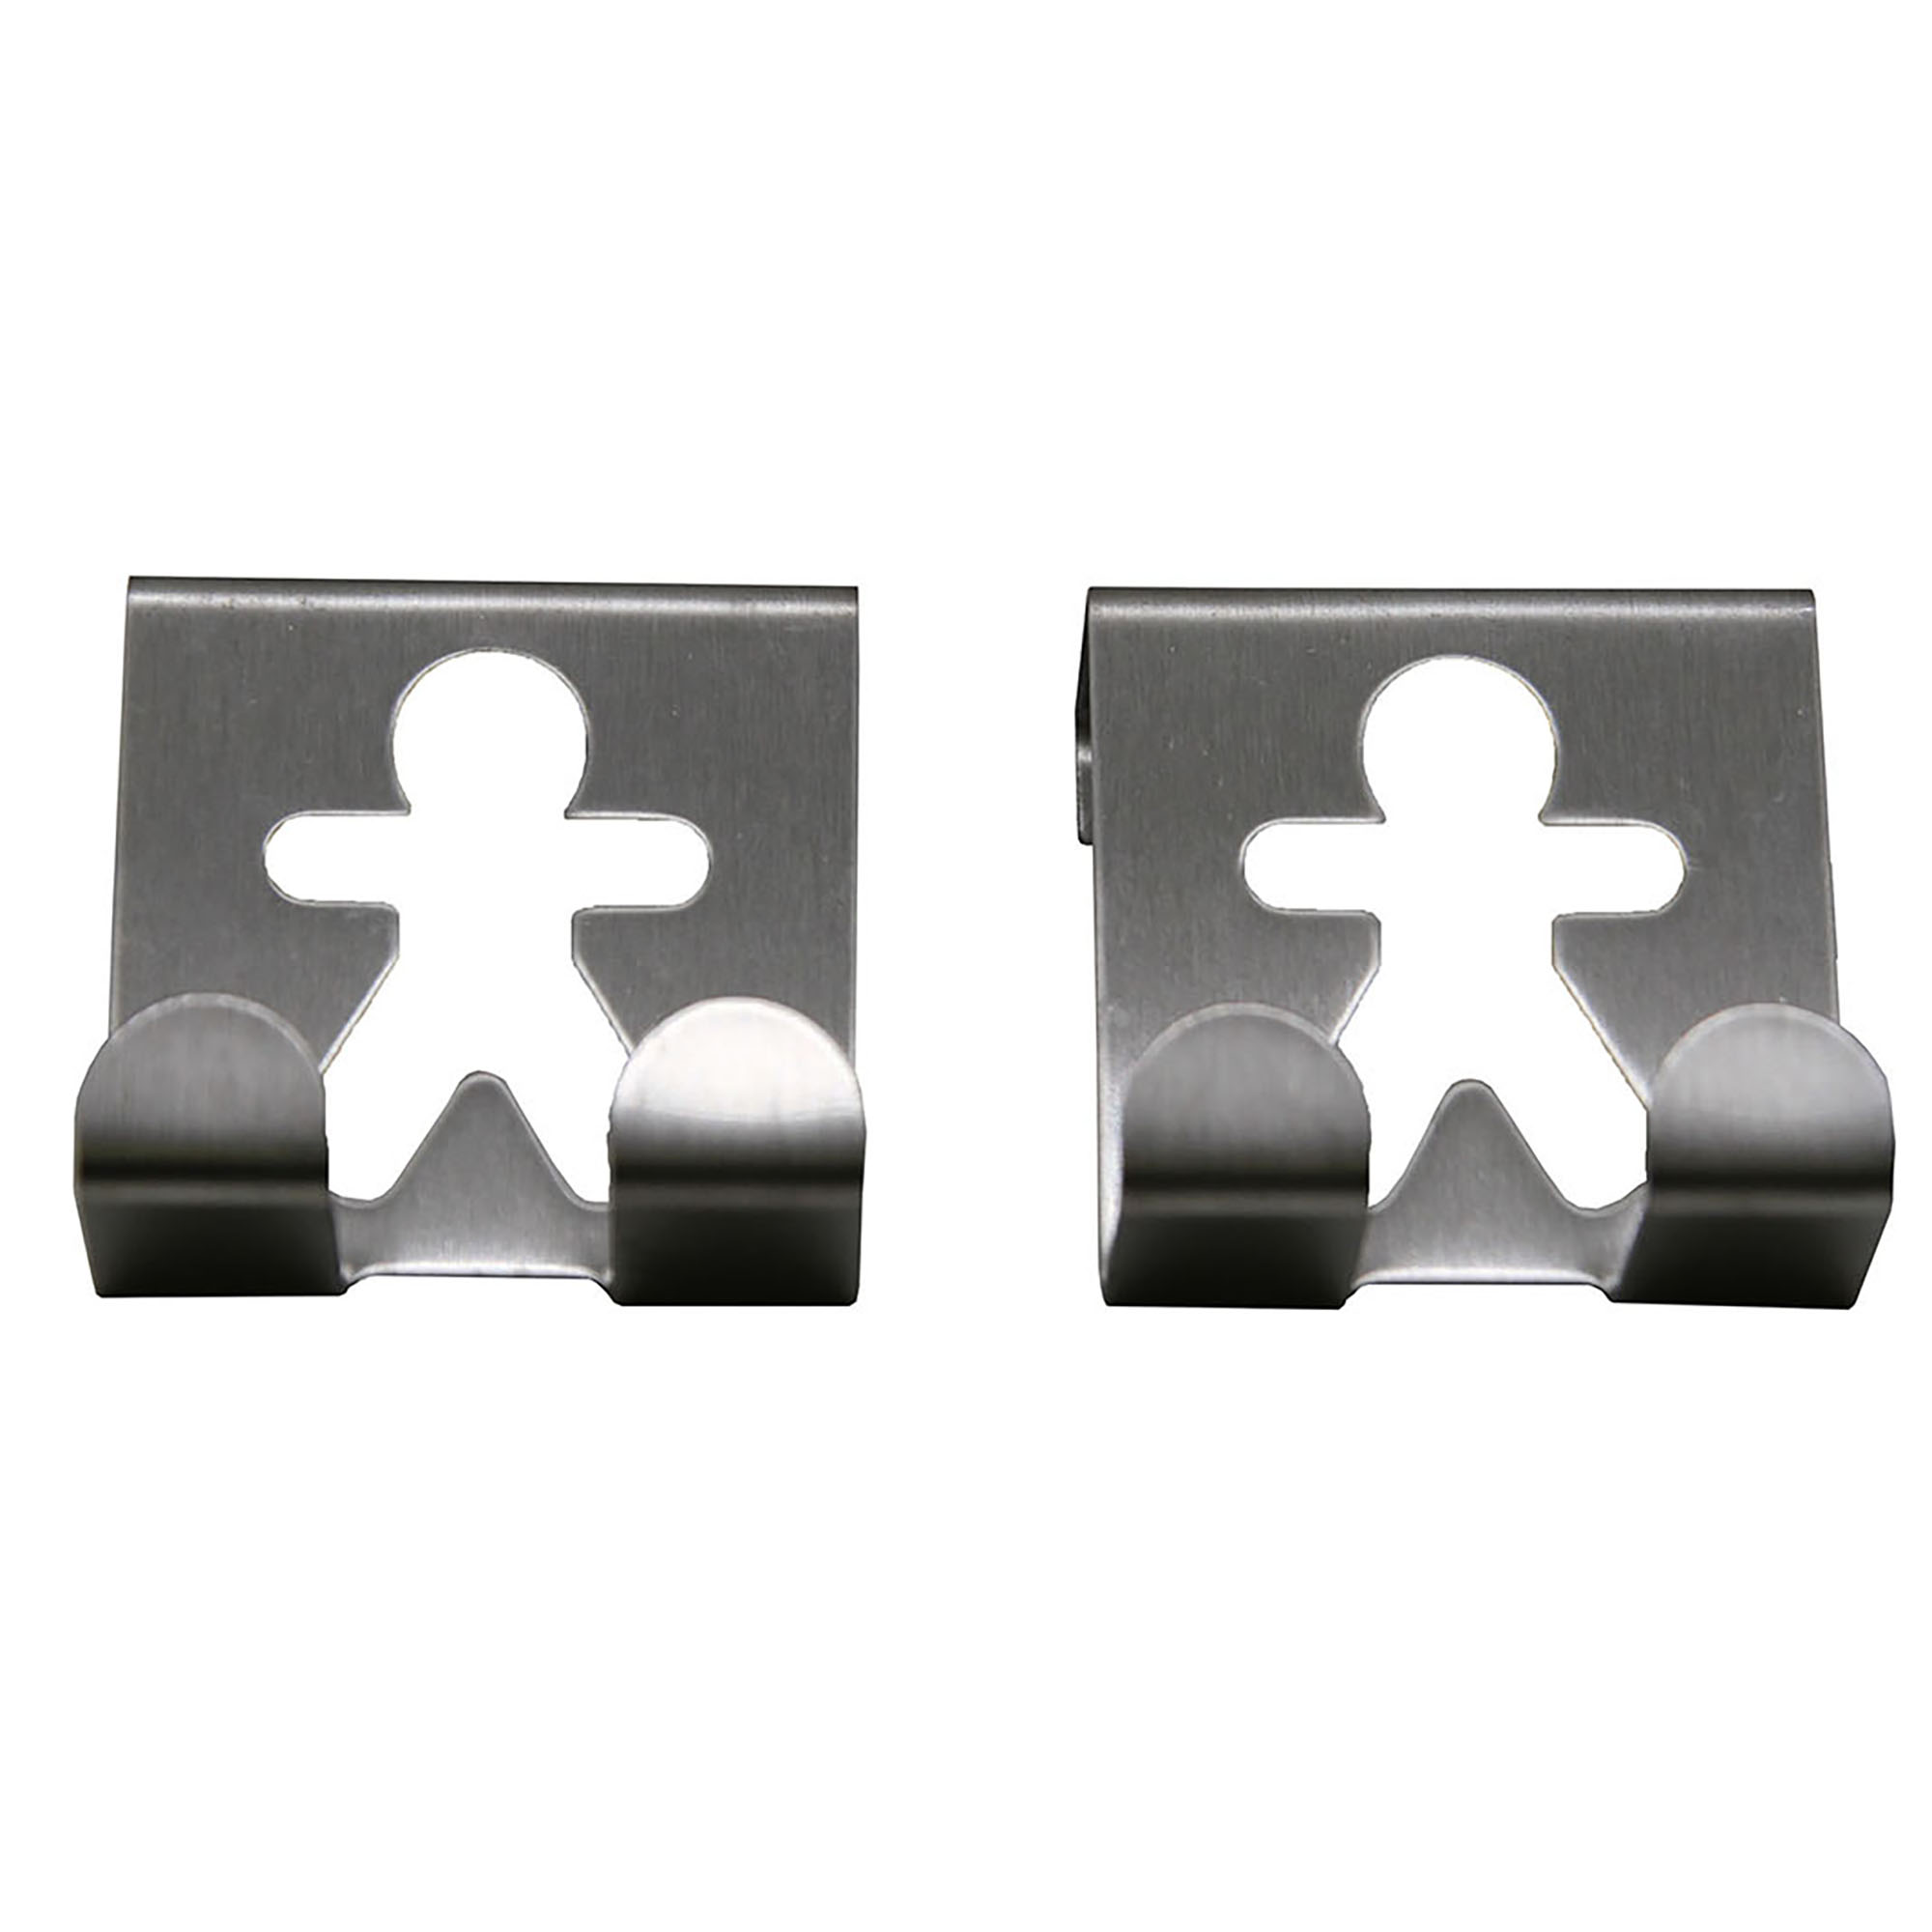 Over The Cabinet Door Double Hooks - Man Man Design- Set of 2- Chrome- Stainless Steel